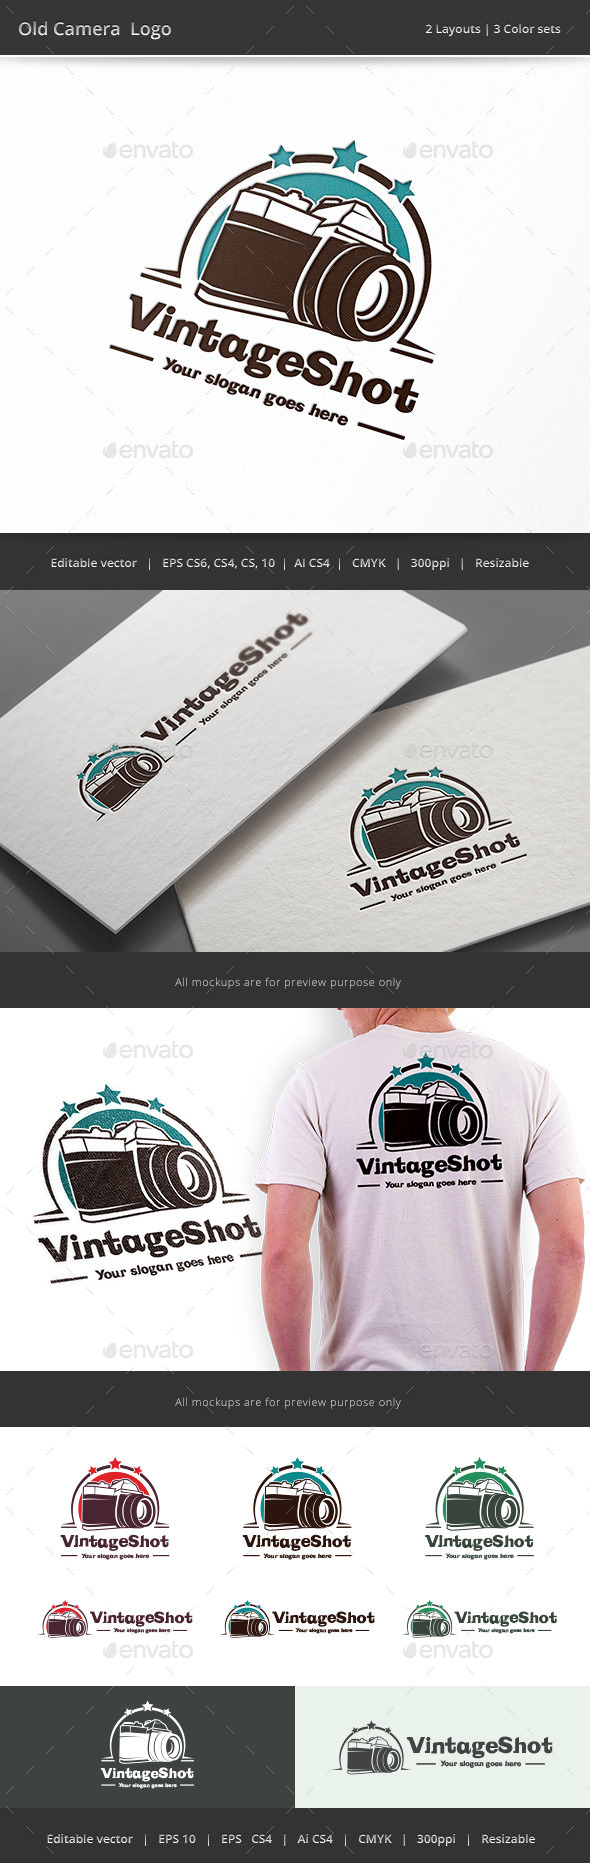 GraphicRiver Old Camera Logo 9132685